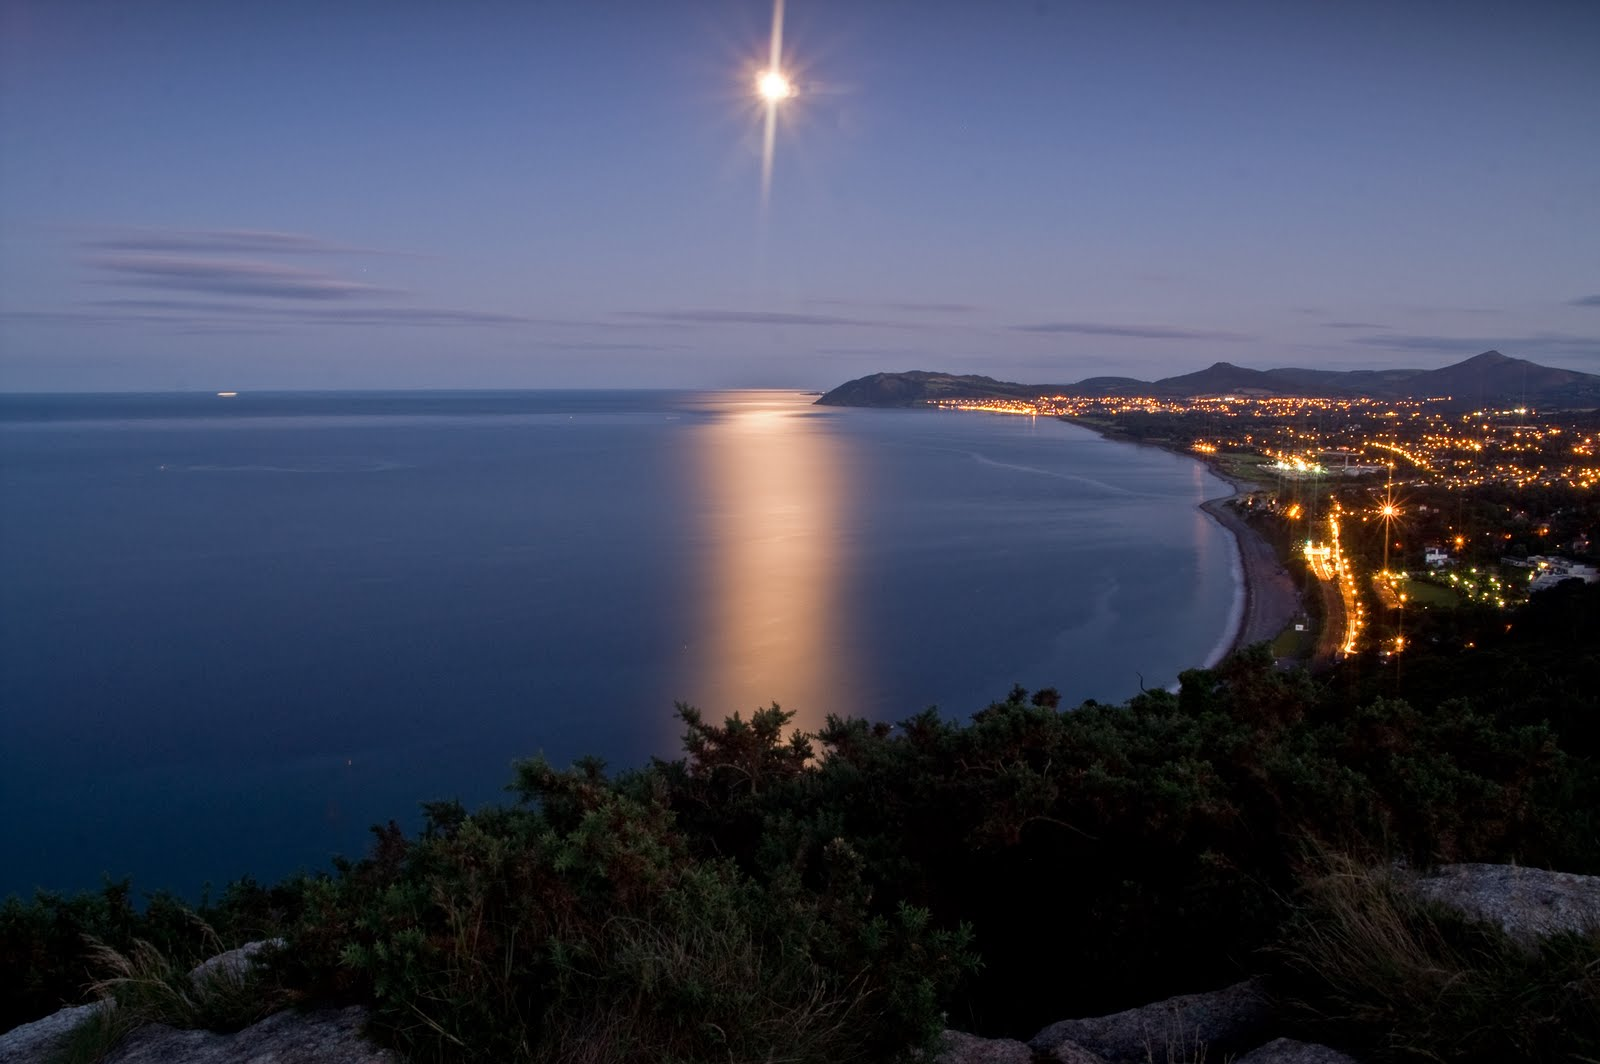 Killiney by Moonlight